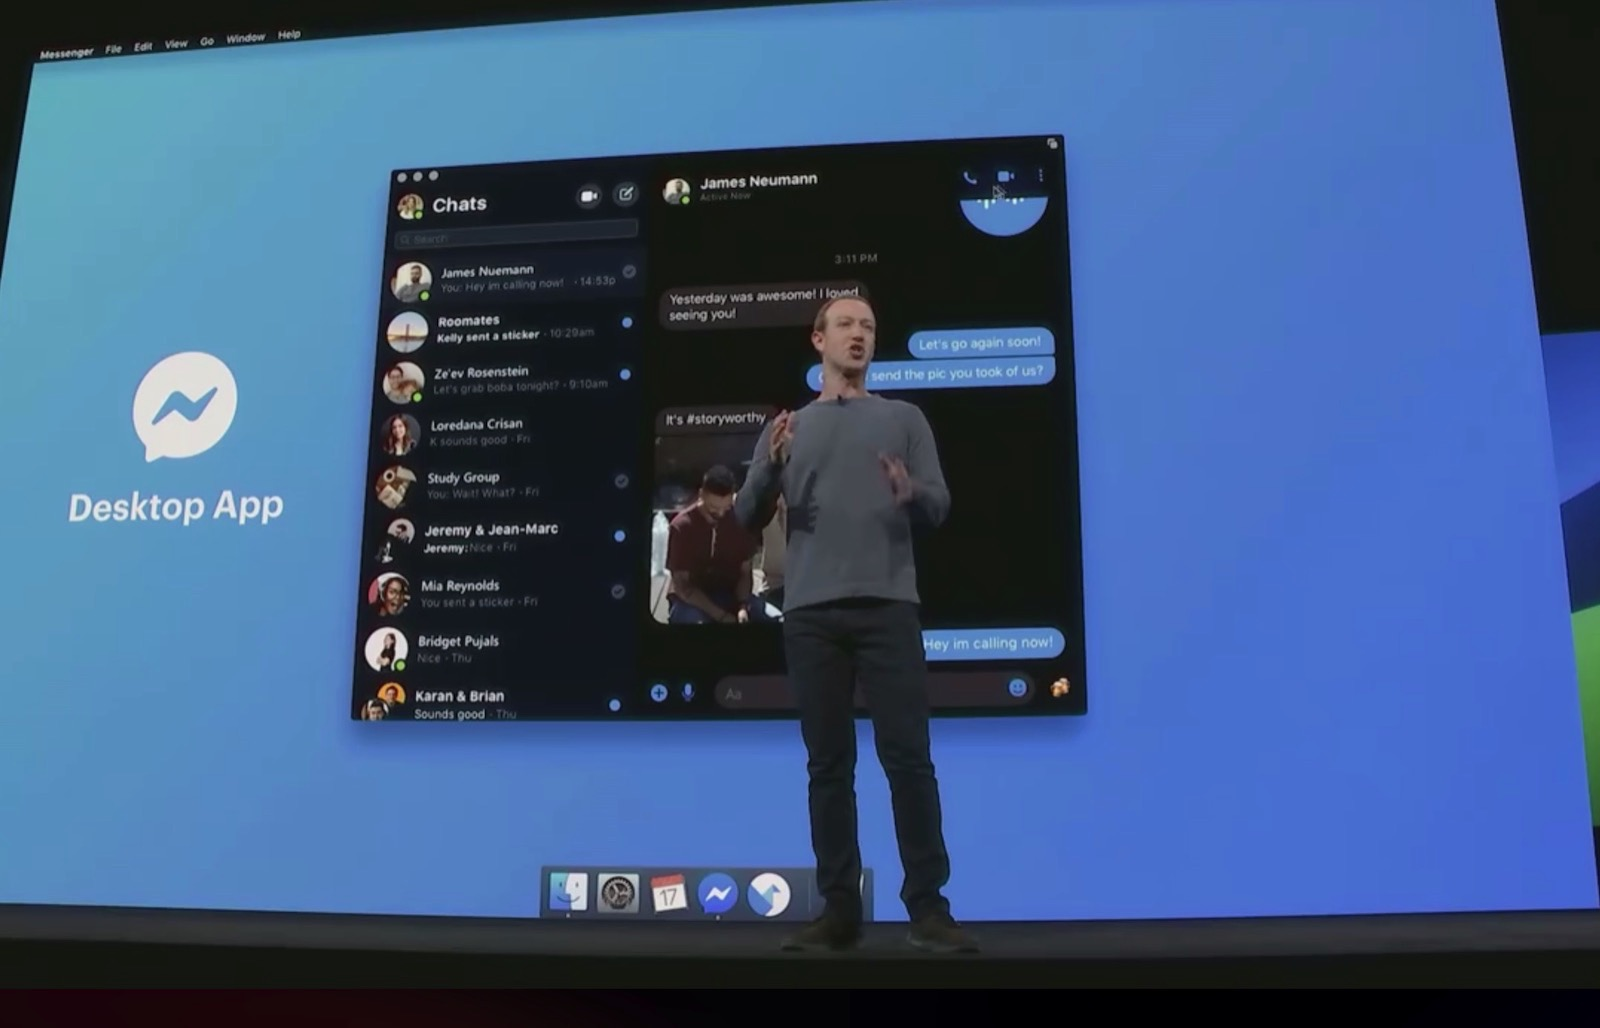 Facebook-Messenger-for-Mac-and-PC-1.jpg